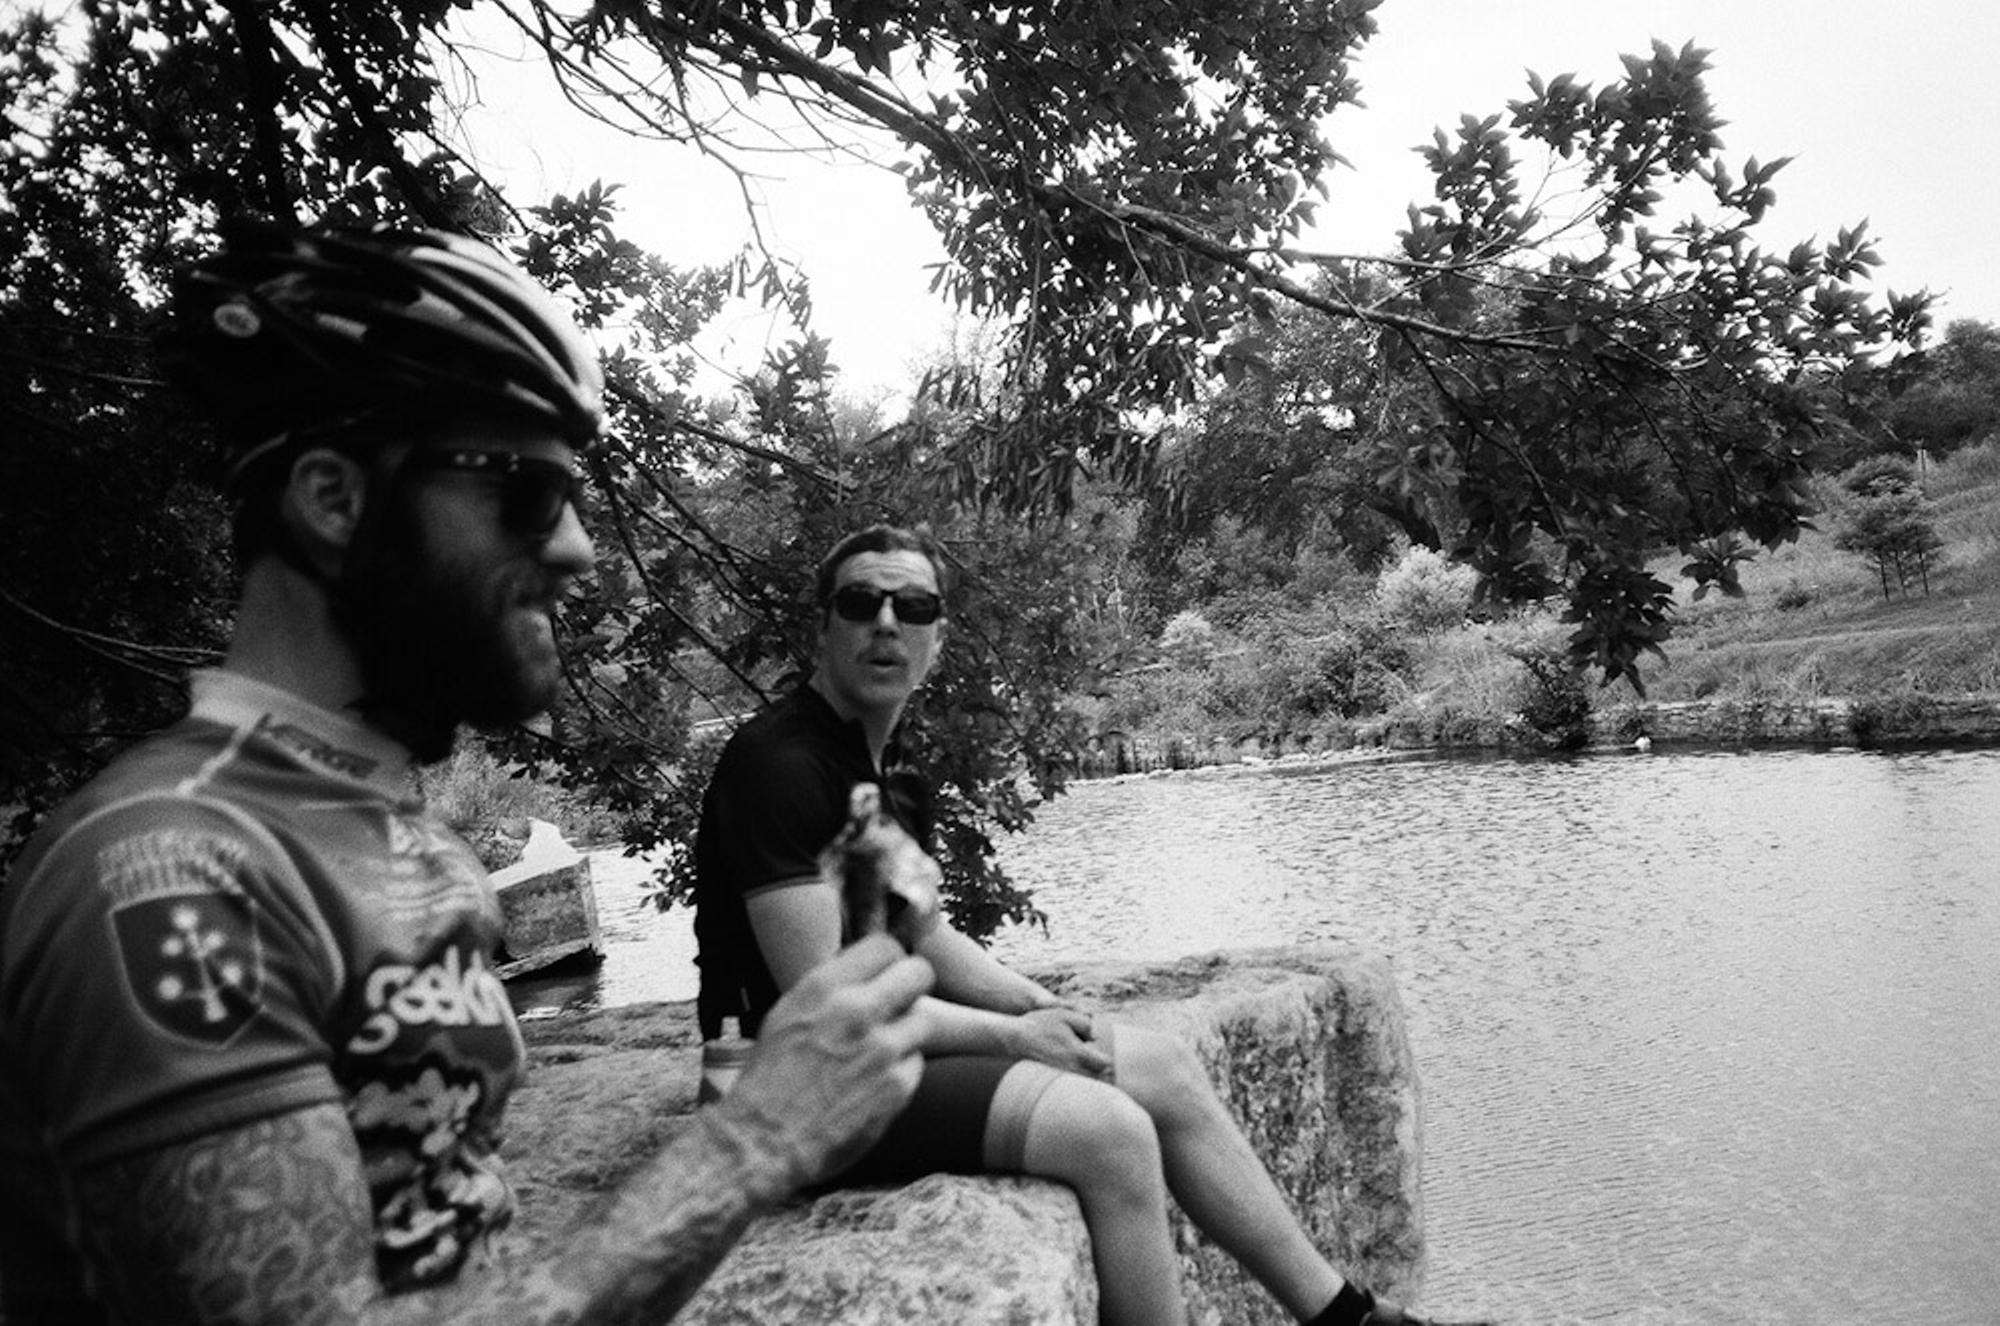 Recent Roll: The Geekhouse Boys in Austin